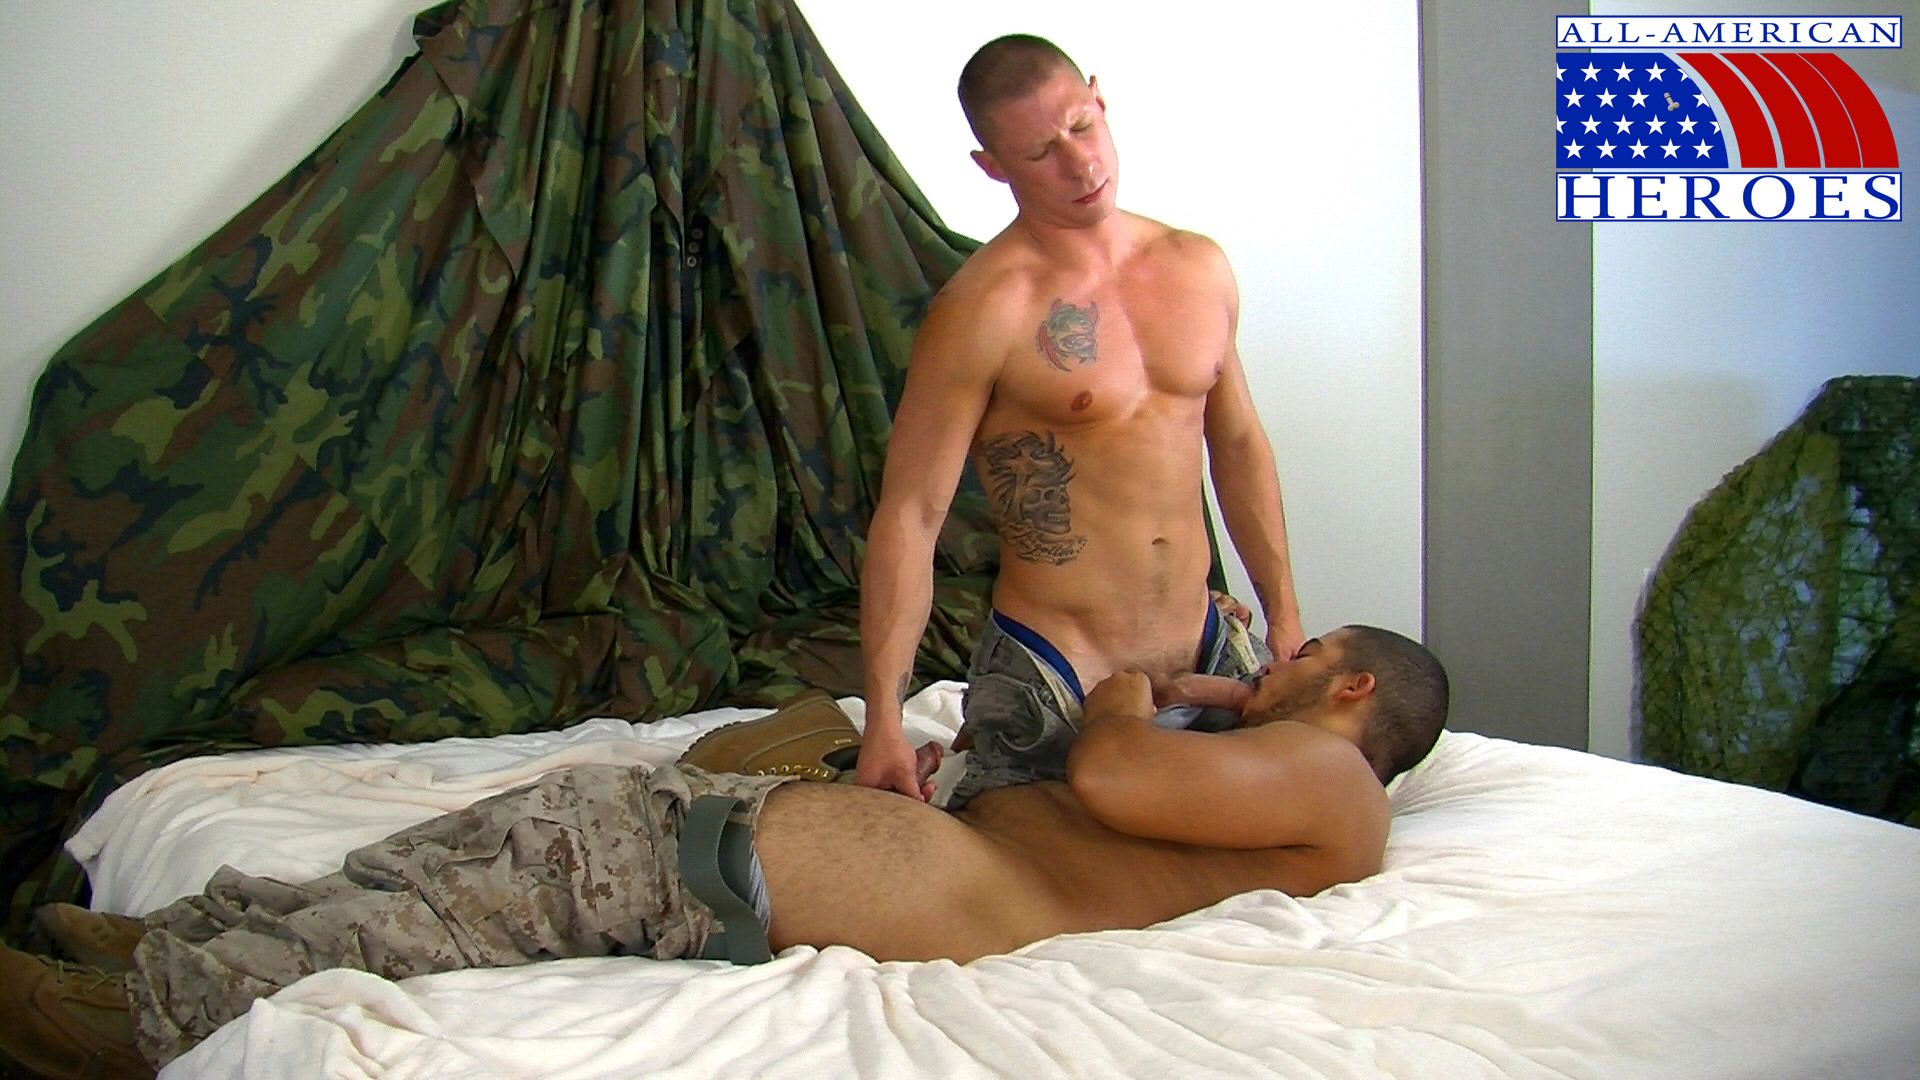 All-American-Heros-Private-Tyler-fucks-Private-Alex-army-marine-fuck-03 Hot Amateur Army Guy With Big Cock Tops a Hairy Marine